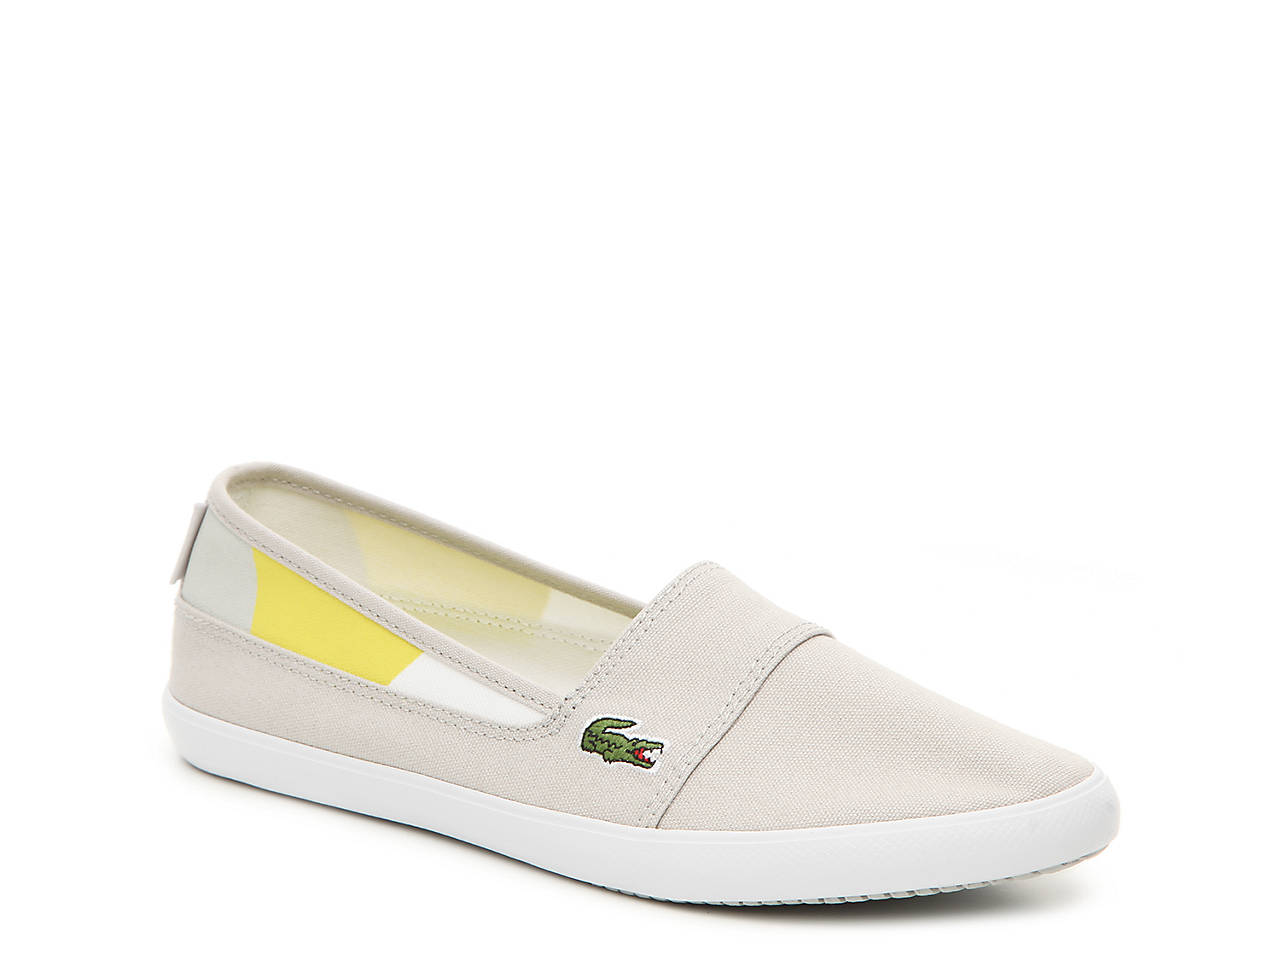 ad35092b7afb Lacoste Marice Sport Flat Women s Shoes